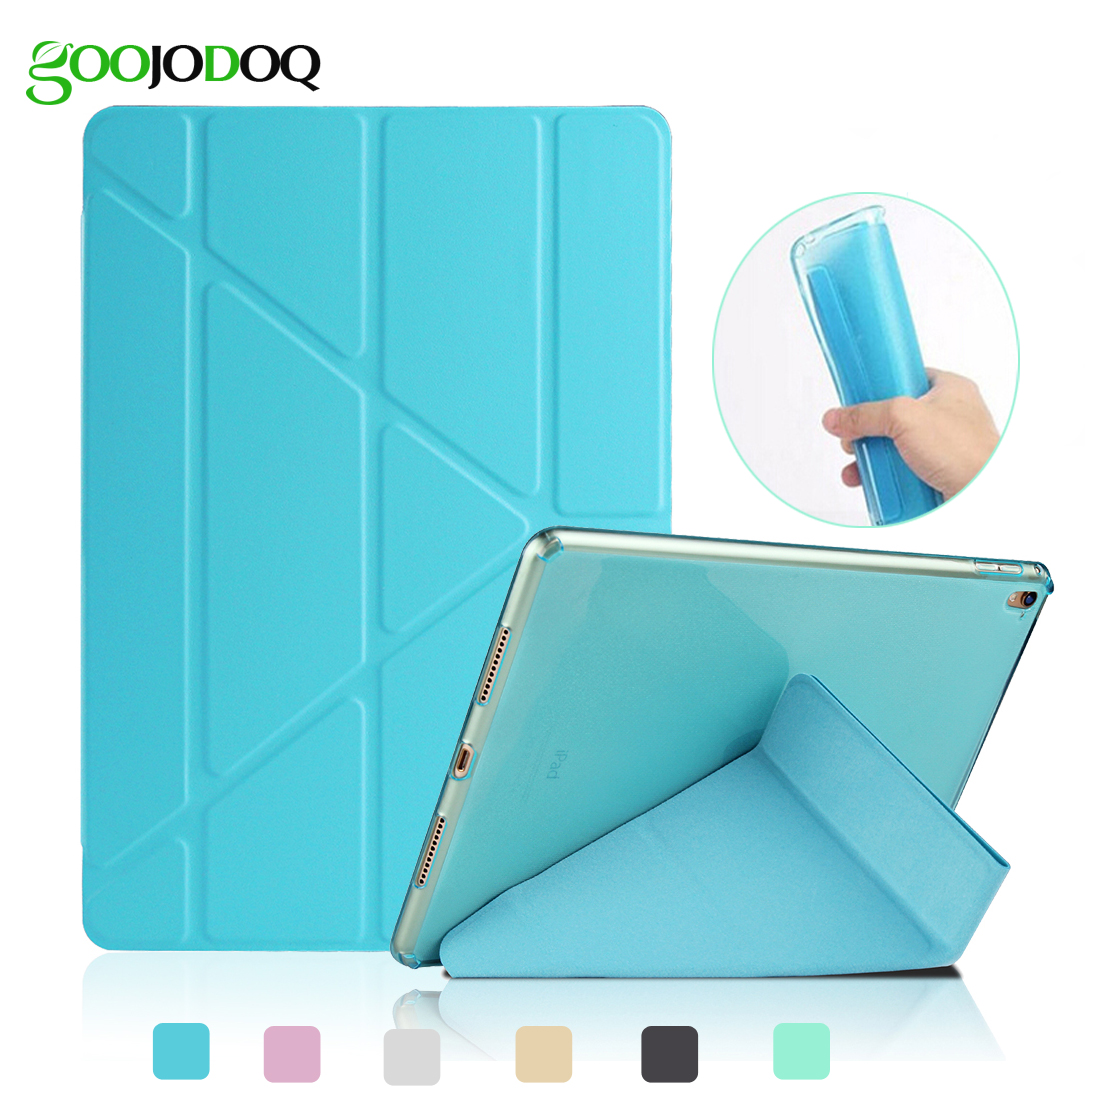 For iPad Air 2 Air 1 Case,for iPad Mini 1 2 3 Transformers Smart Cover with Glitter Silicone Soft Back Tablet Coque for iPad Air for ipad air 1 2 cute candy color soft silicone tablet case cover for ipad 5 6 mini 2 3 fashion slim lovely protective sleeve